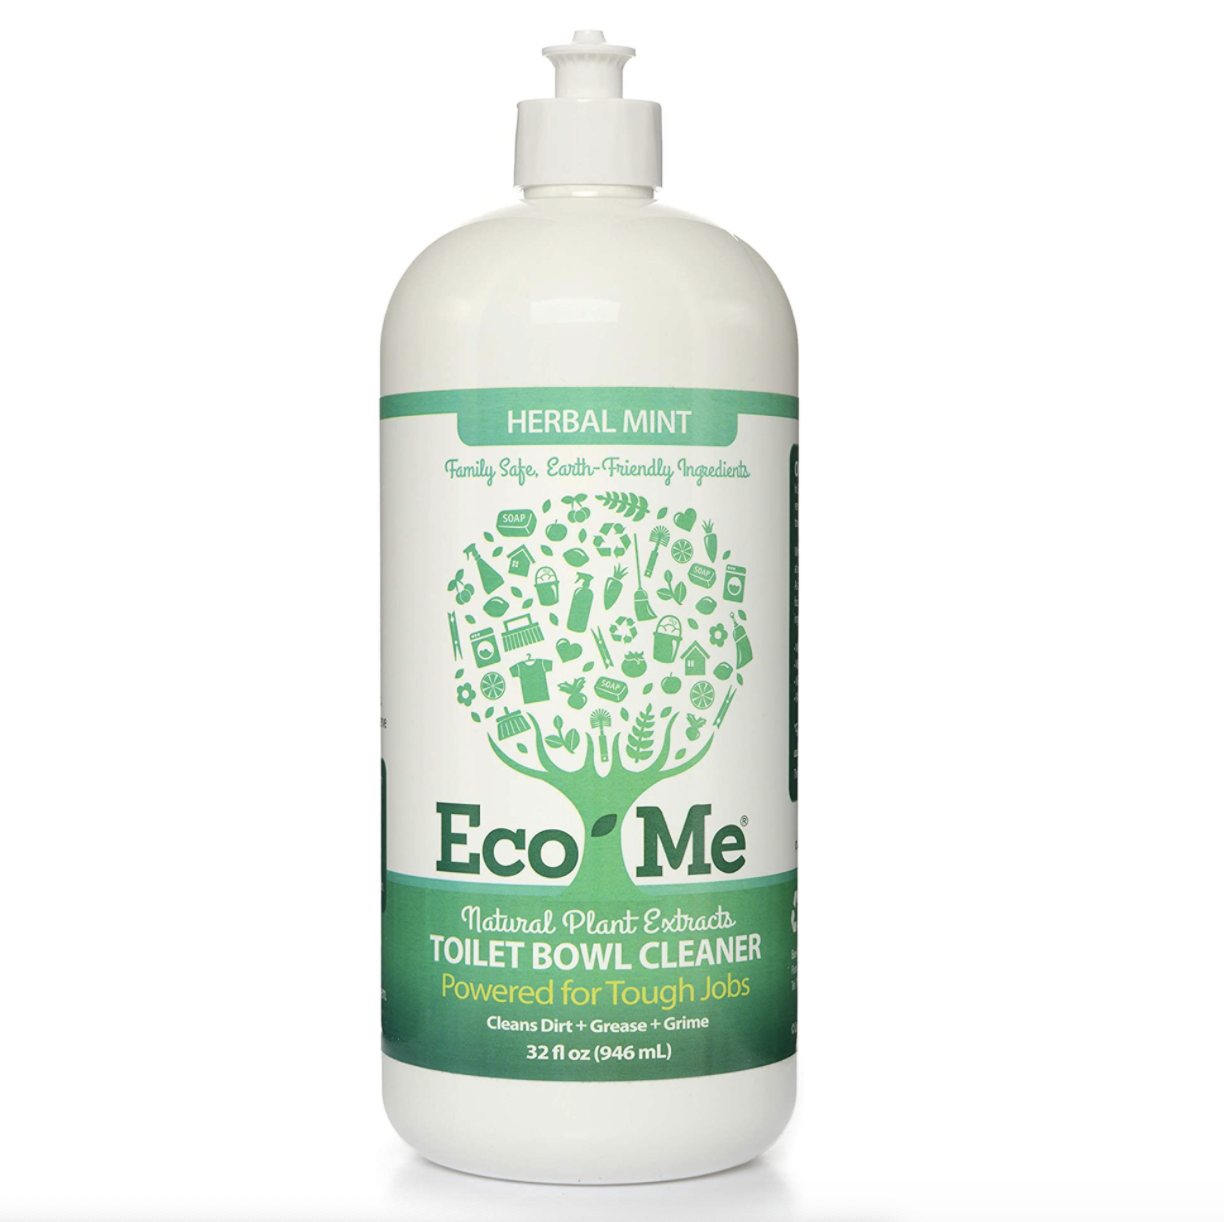 a bottle of Eco-me toilet bowl cleaner